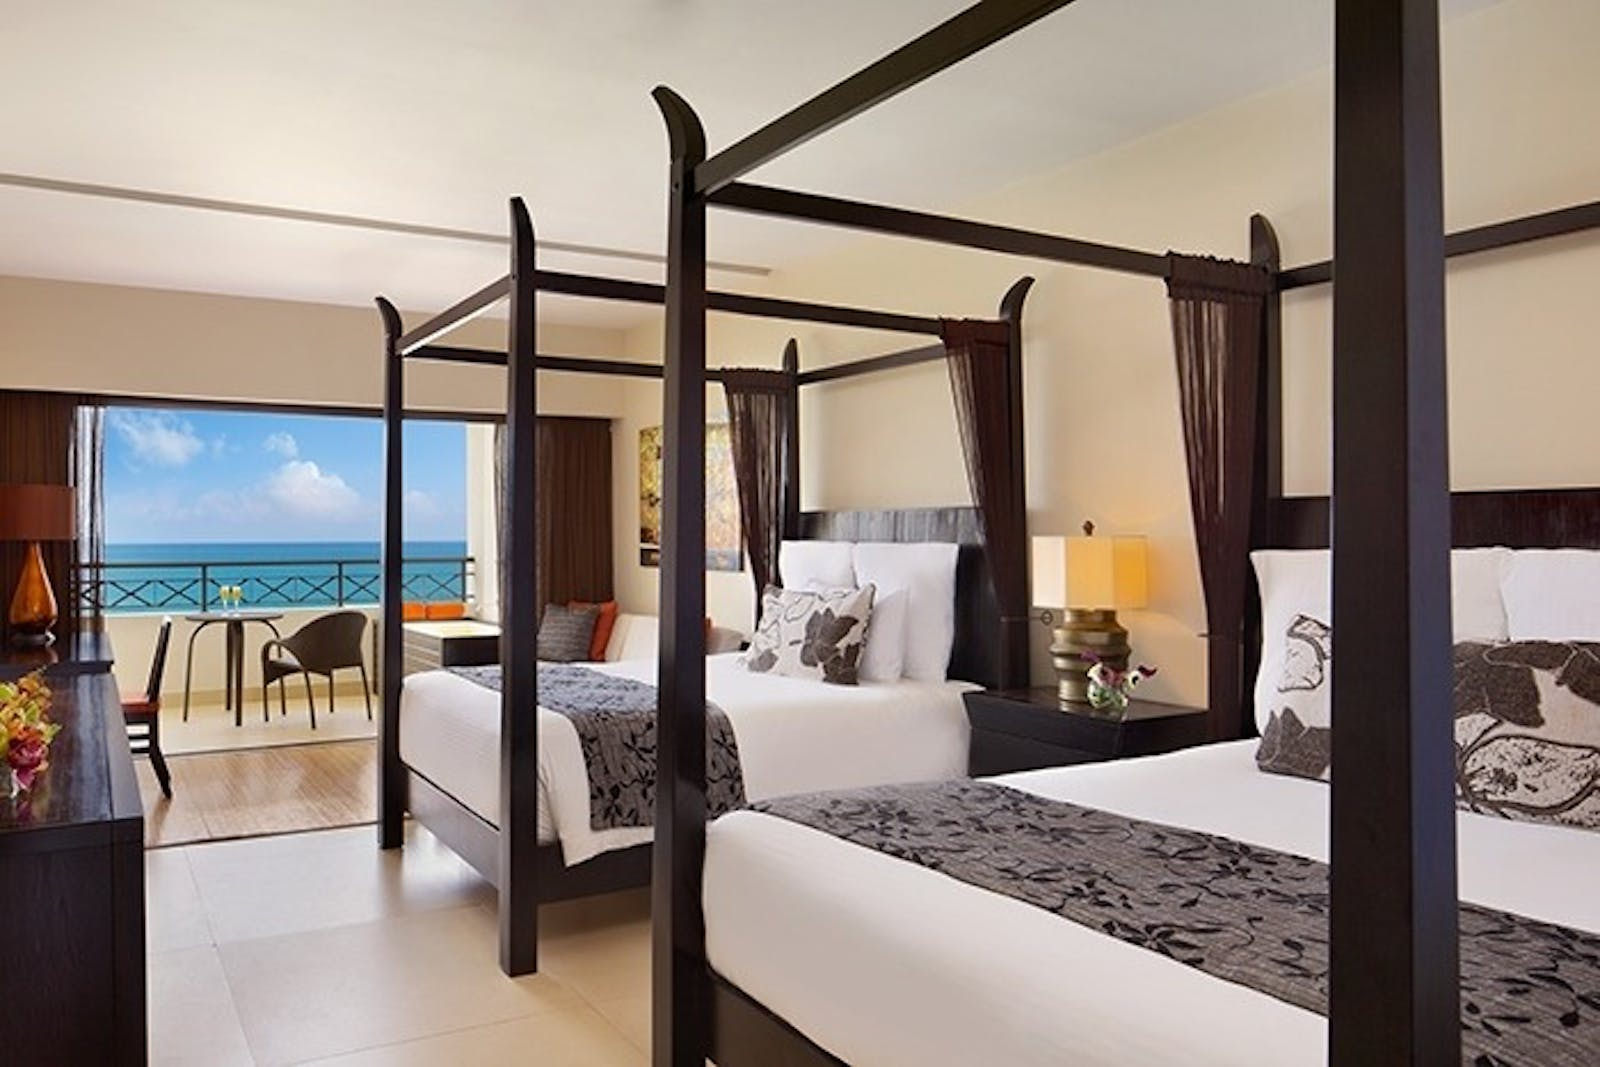 Preferred Club Junior Suite Ocean View at Secrets Wild Orchid Montego Bay, Jamaica